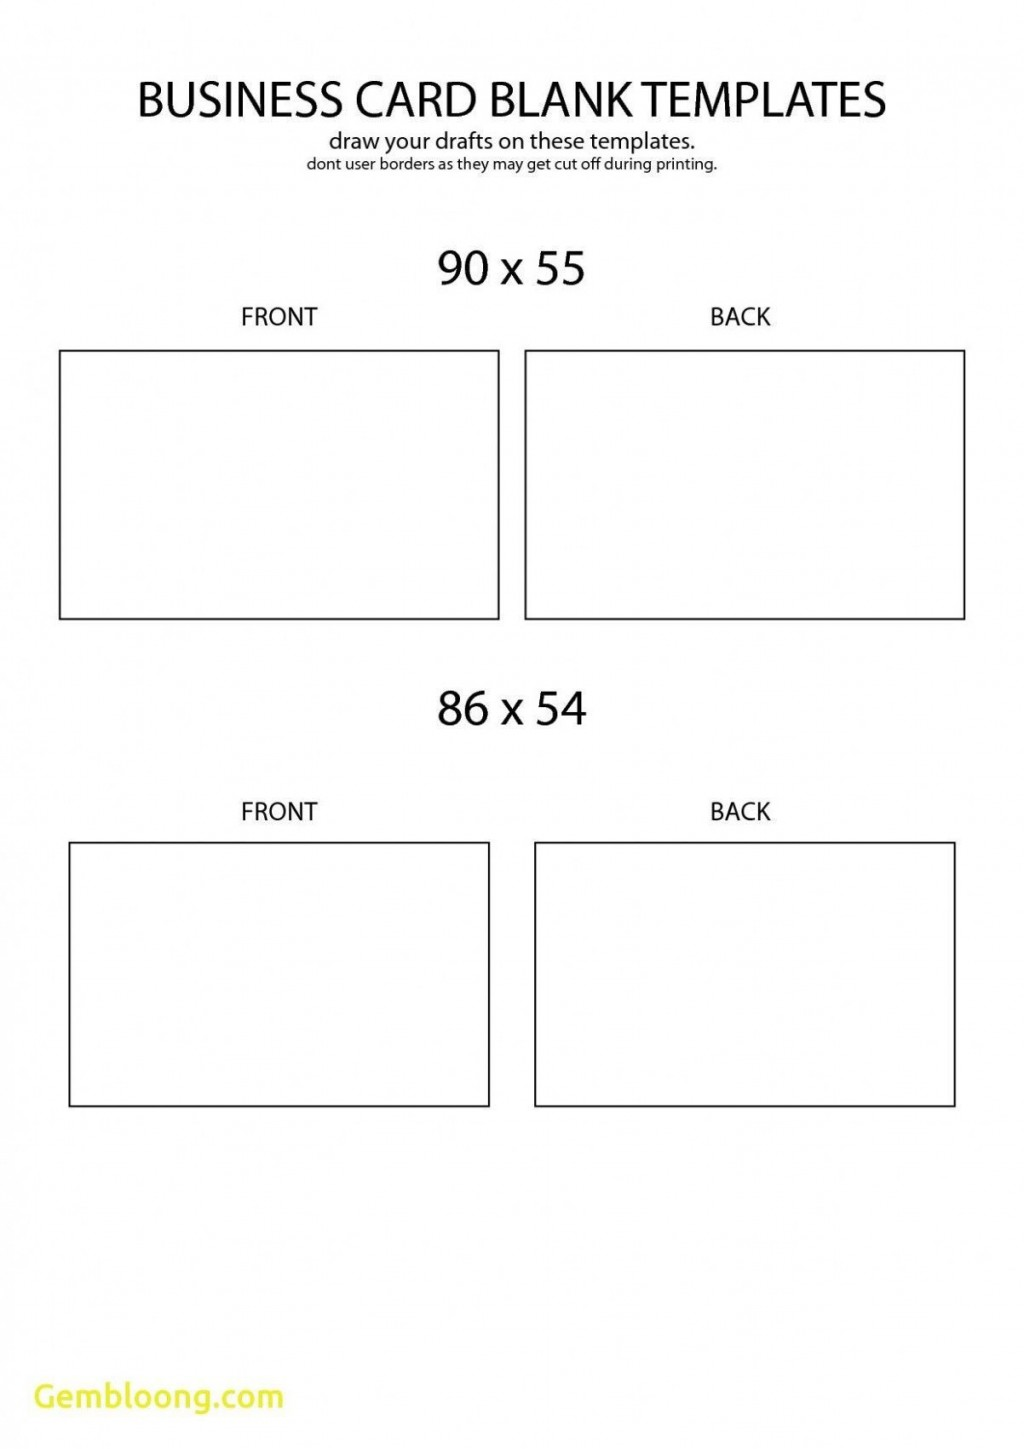 004 Wonderful Simple Busines Card Template Microsoft Word High Definition Large